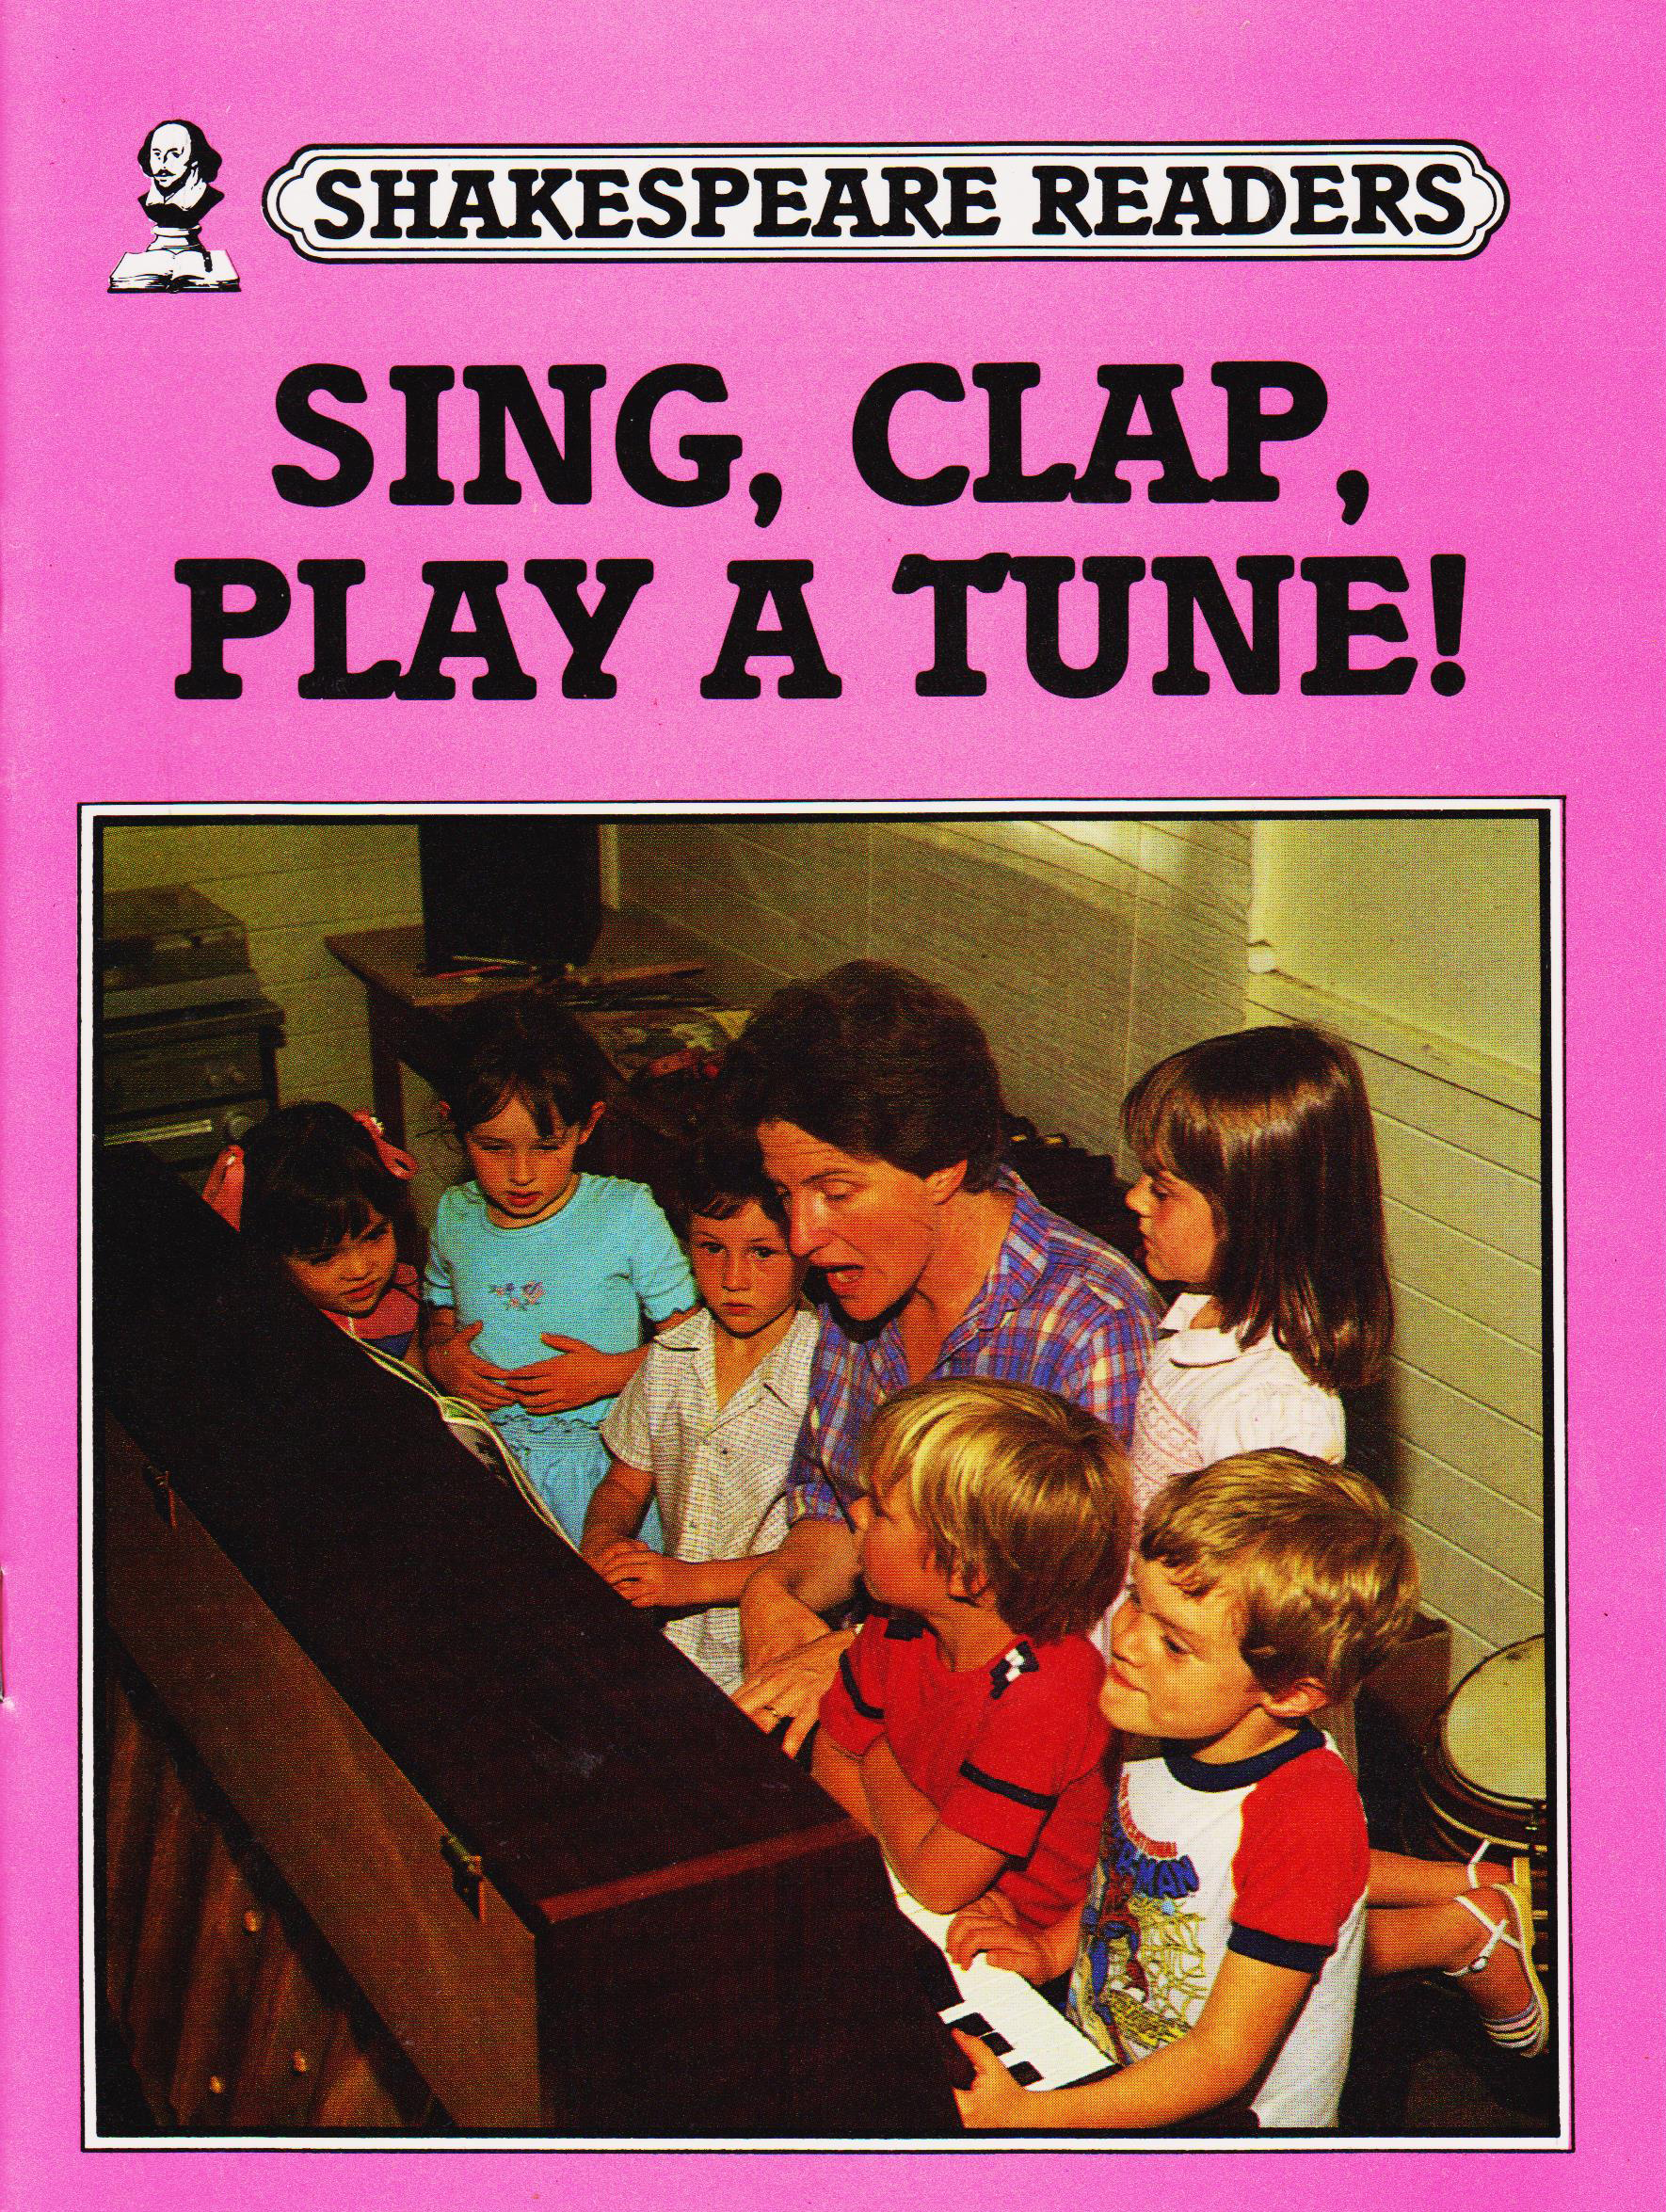 Sing Clap Play a Tune!